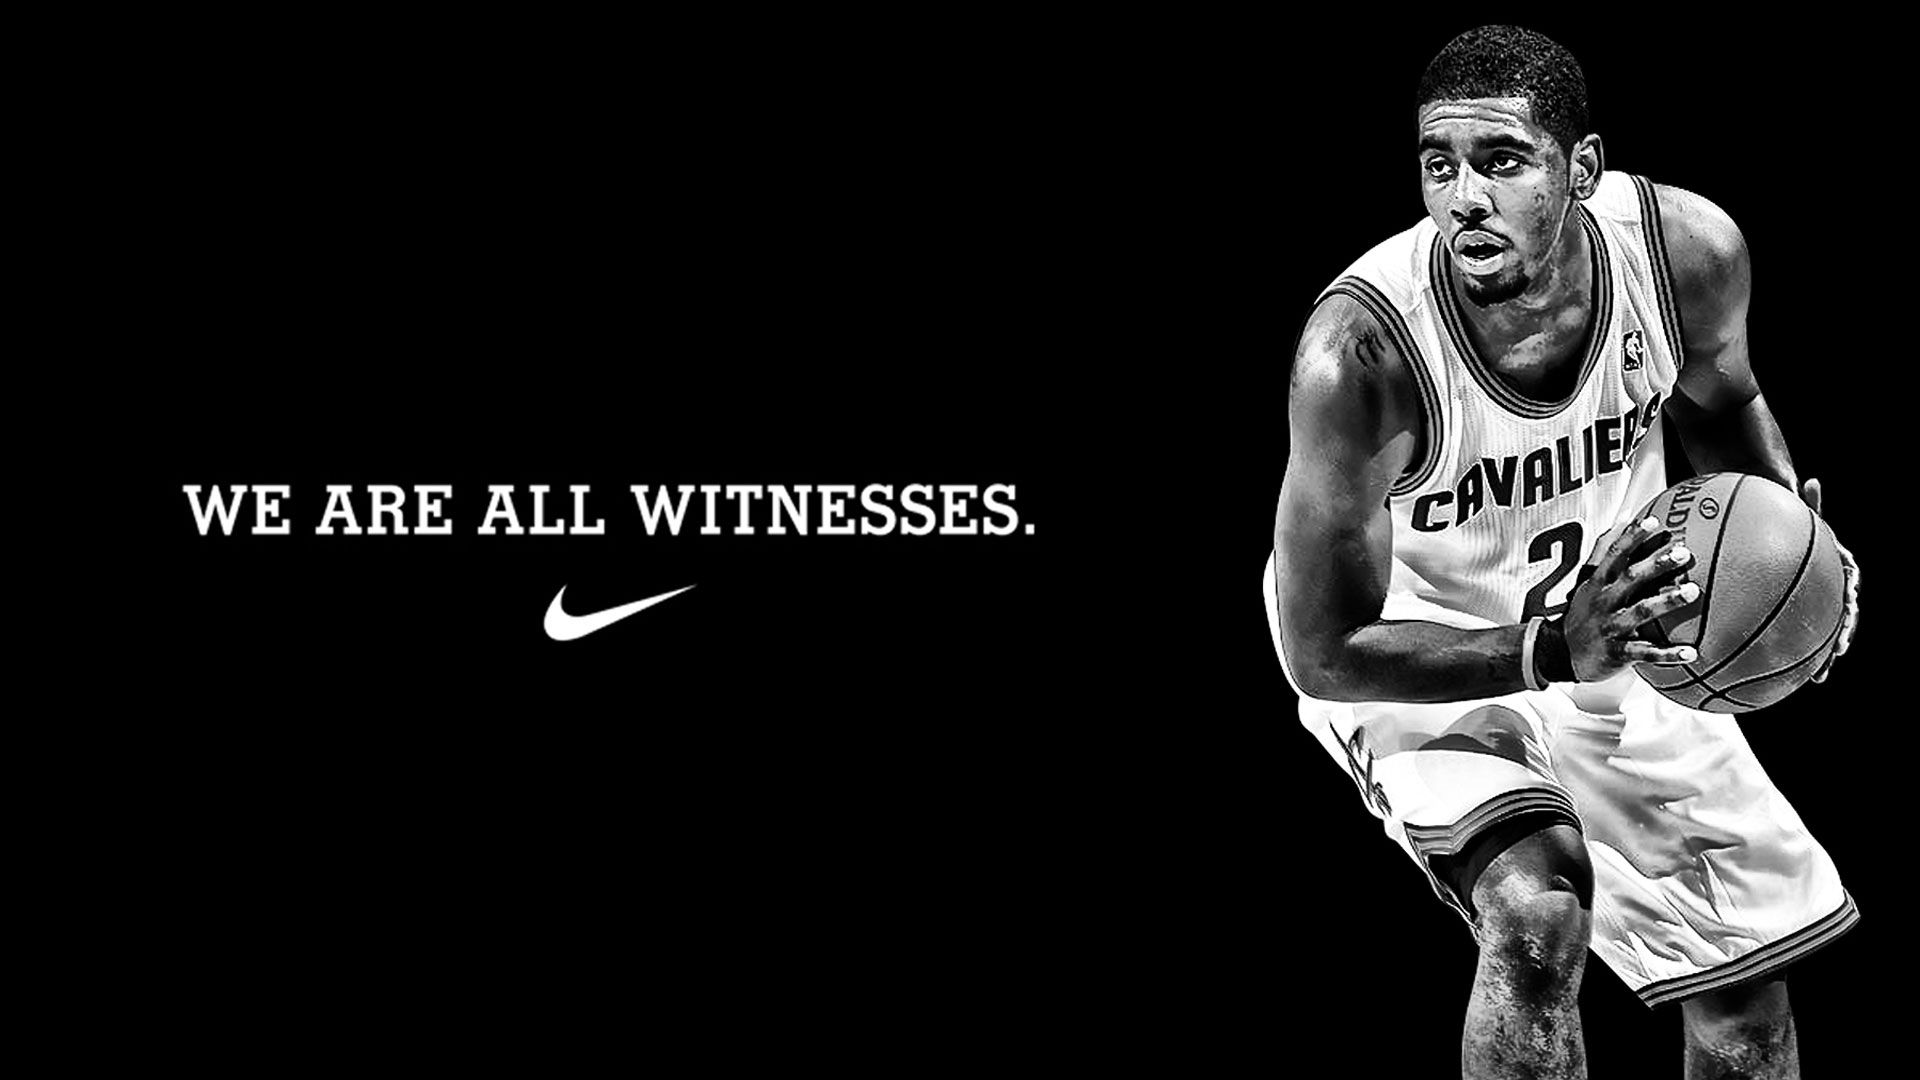 Nike Basketball Wallpaper 2015